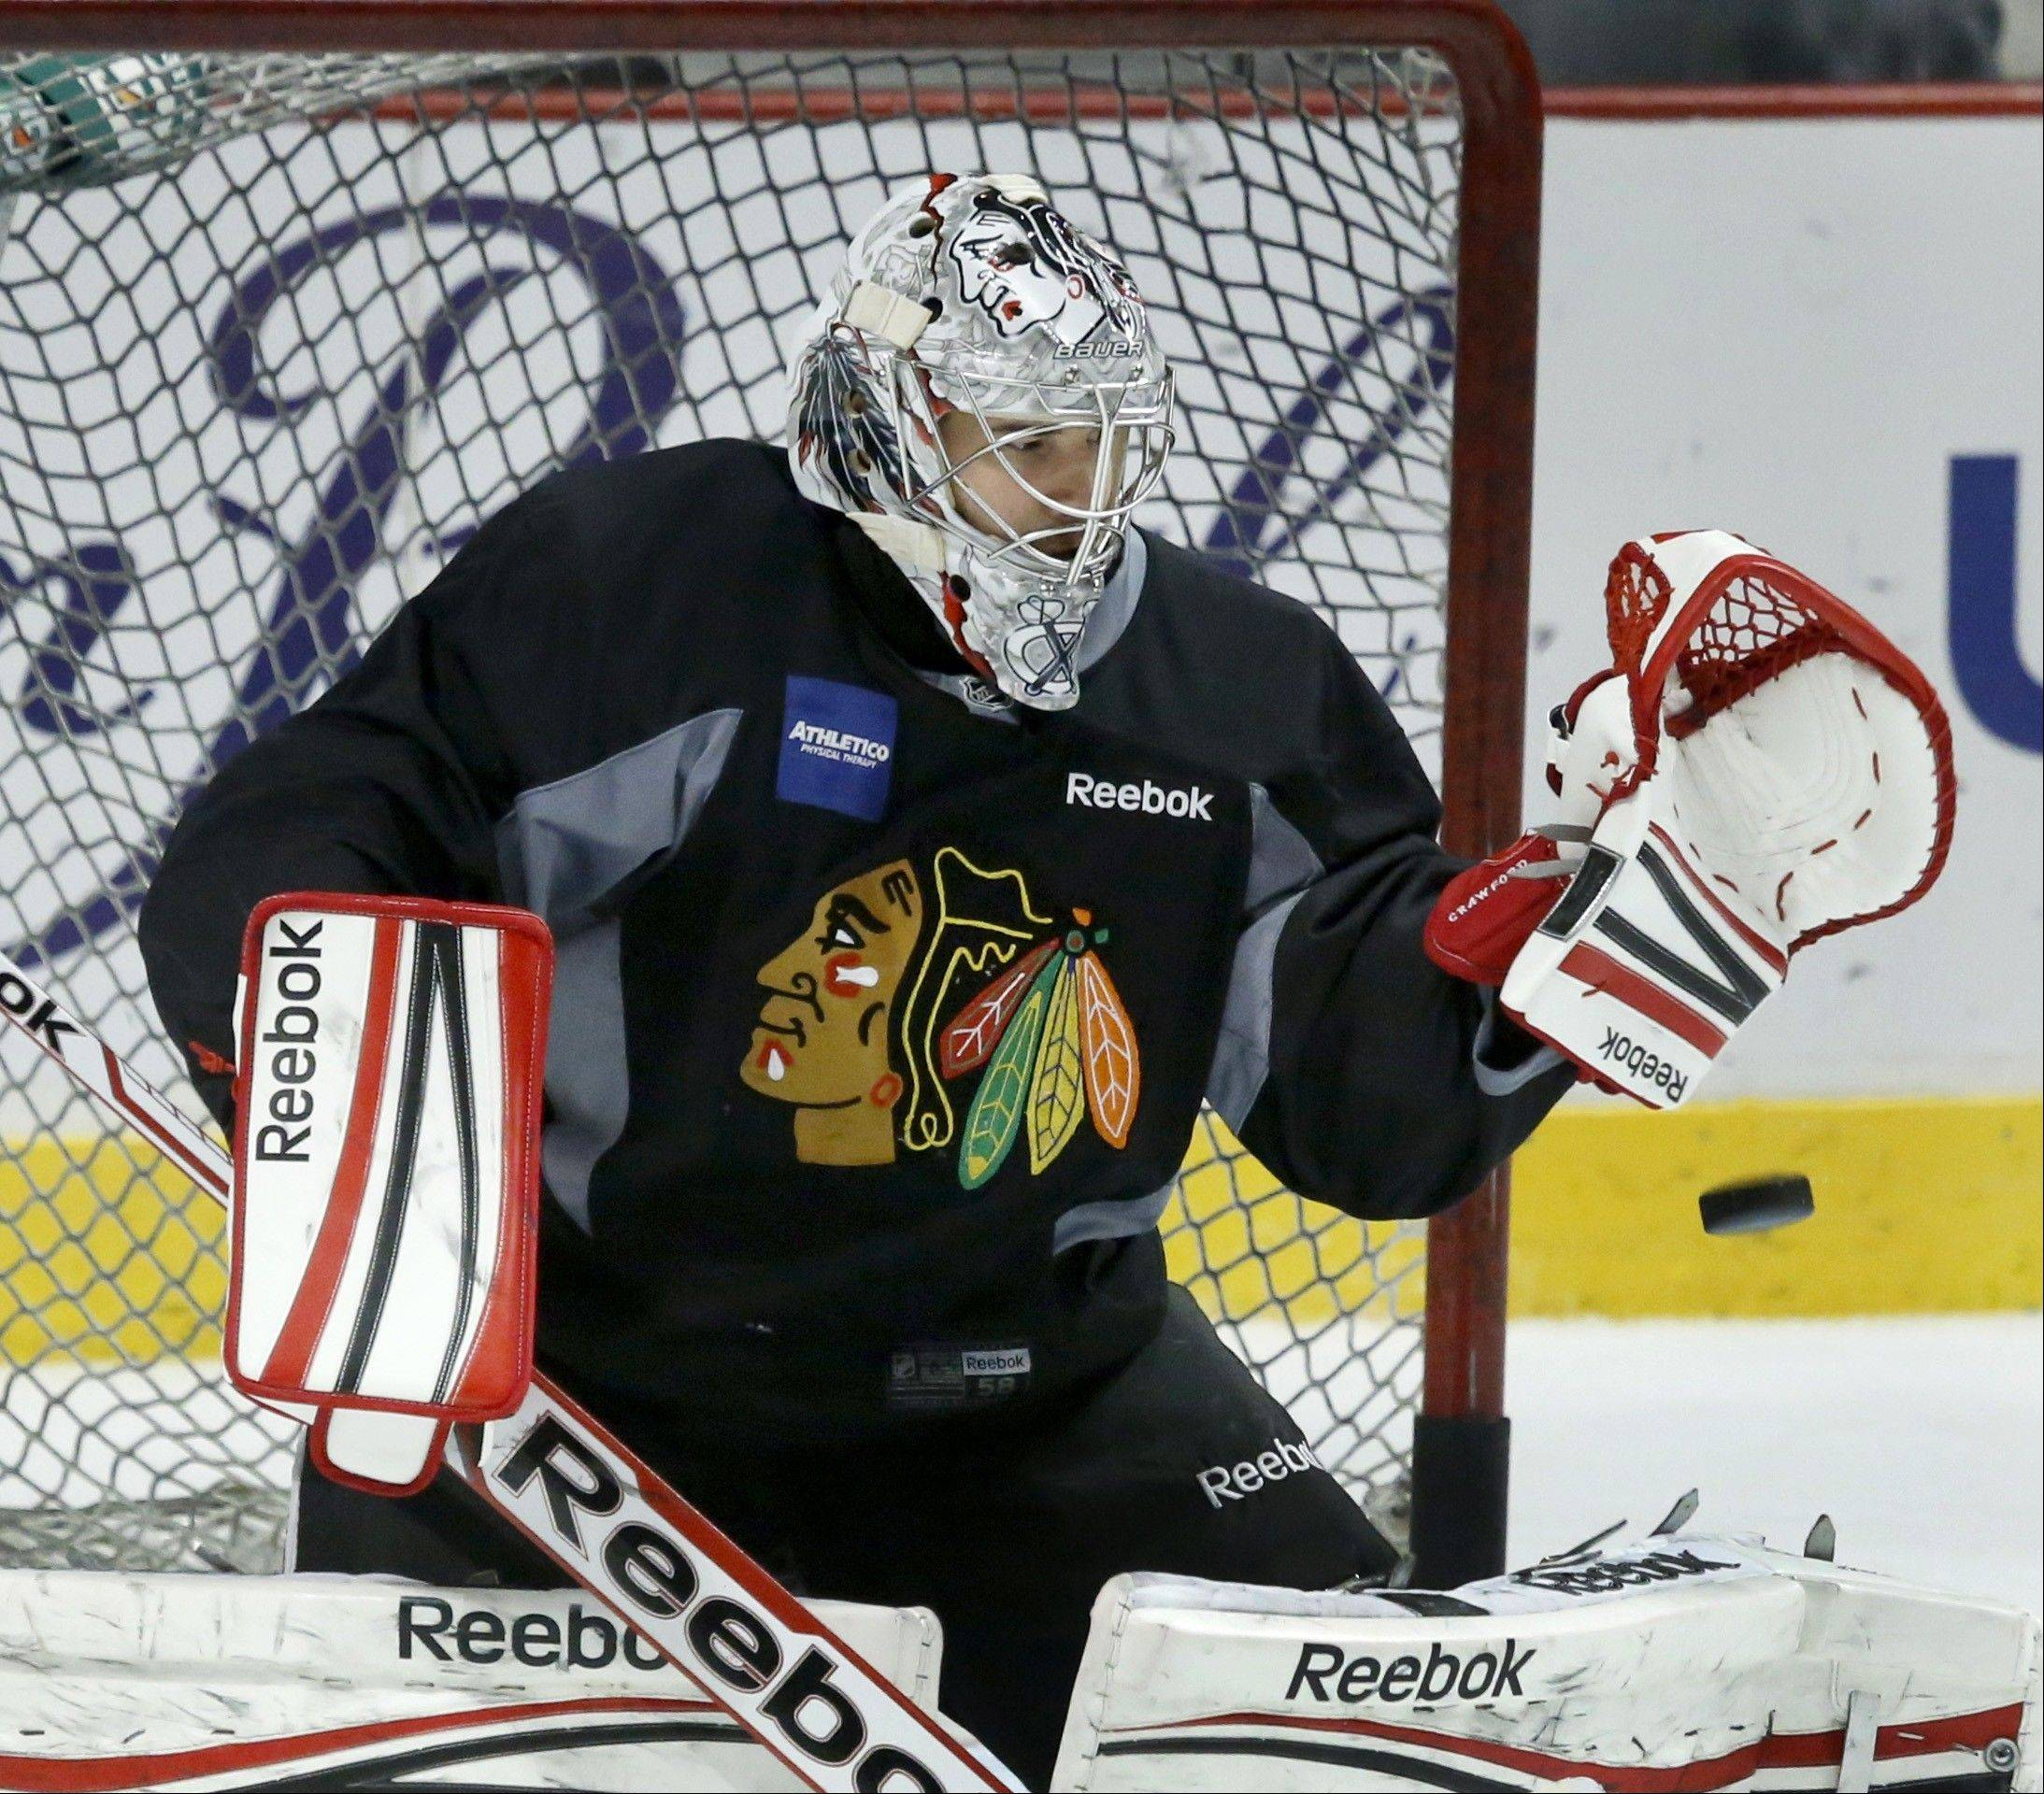 Blackhawks goalie Corey Crawford, seen here in a June file photo, skated before Sunday's practice and coach Joel Quenneville expects the veteran to be back with his teammates following a three-day holiday break this week.